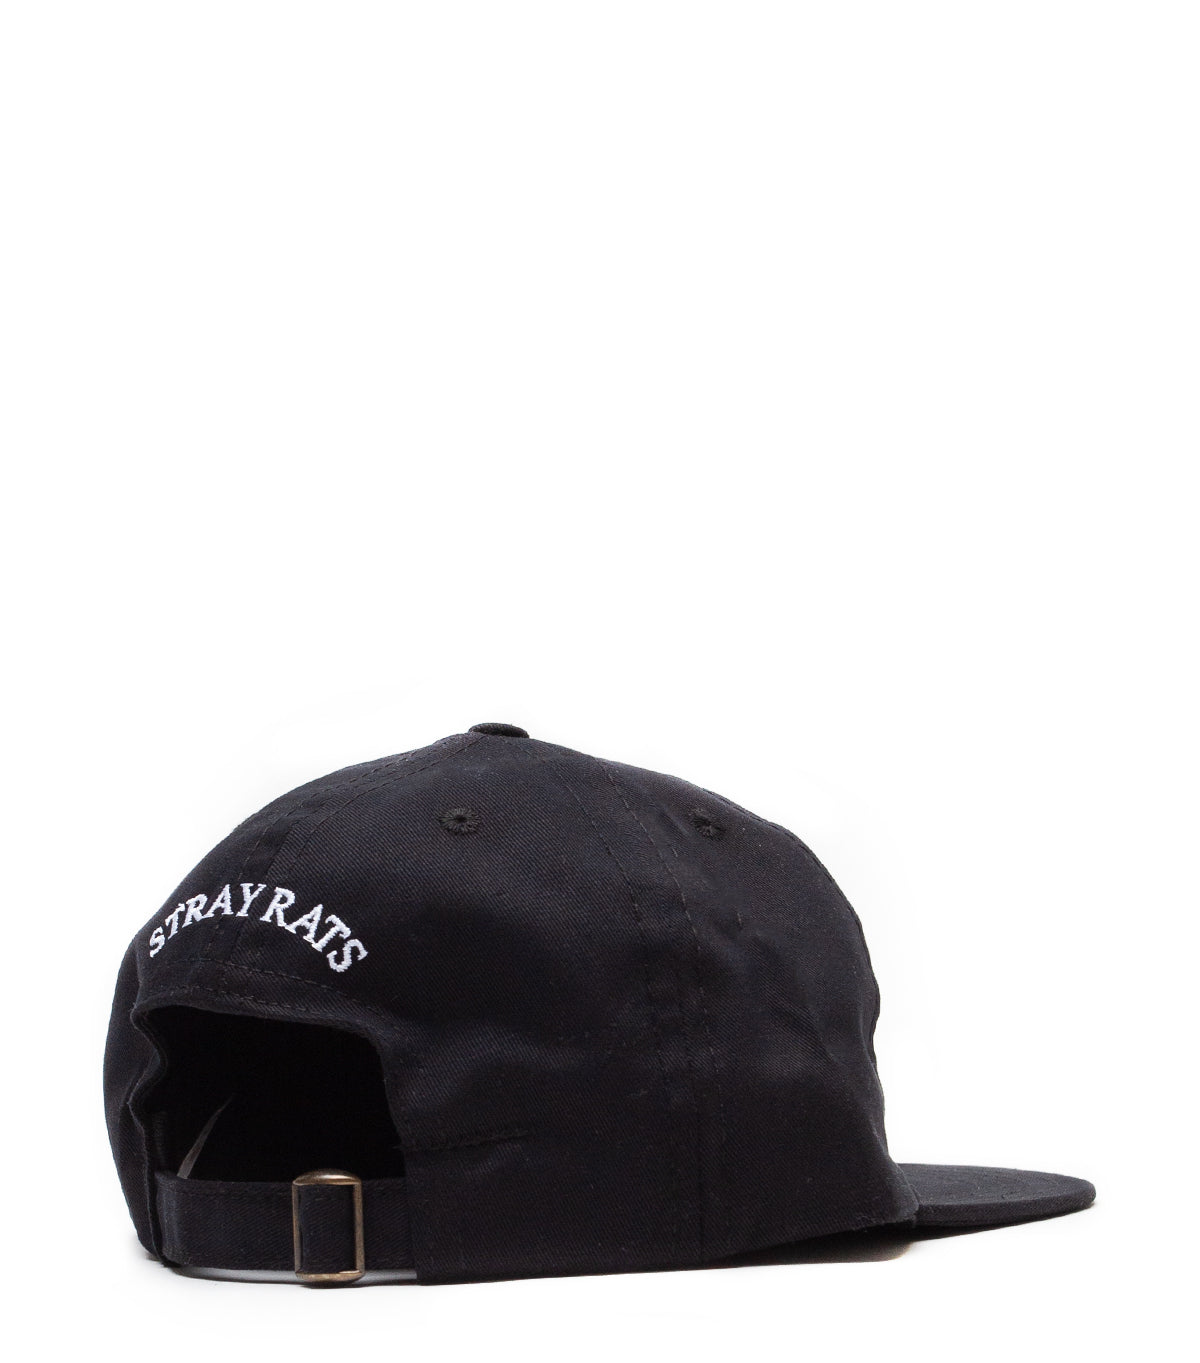 HUMAN MADE | HUMAN MADE 6PANEL TWILL CAP #3 BLACK | SOMEWHERE®